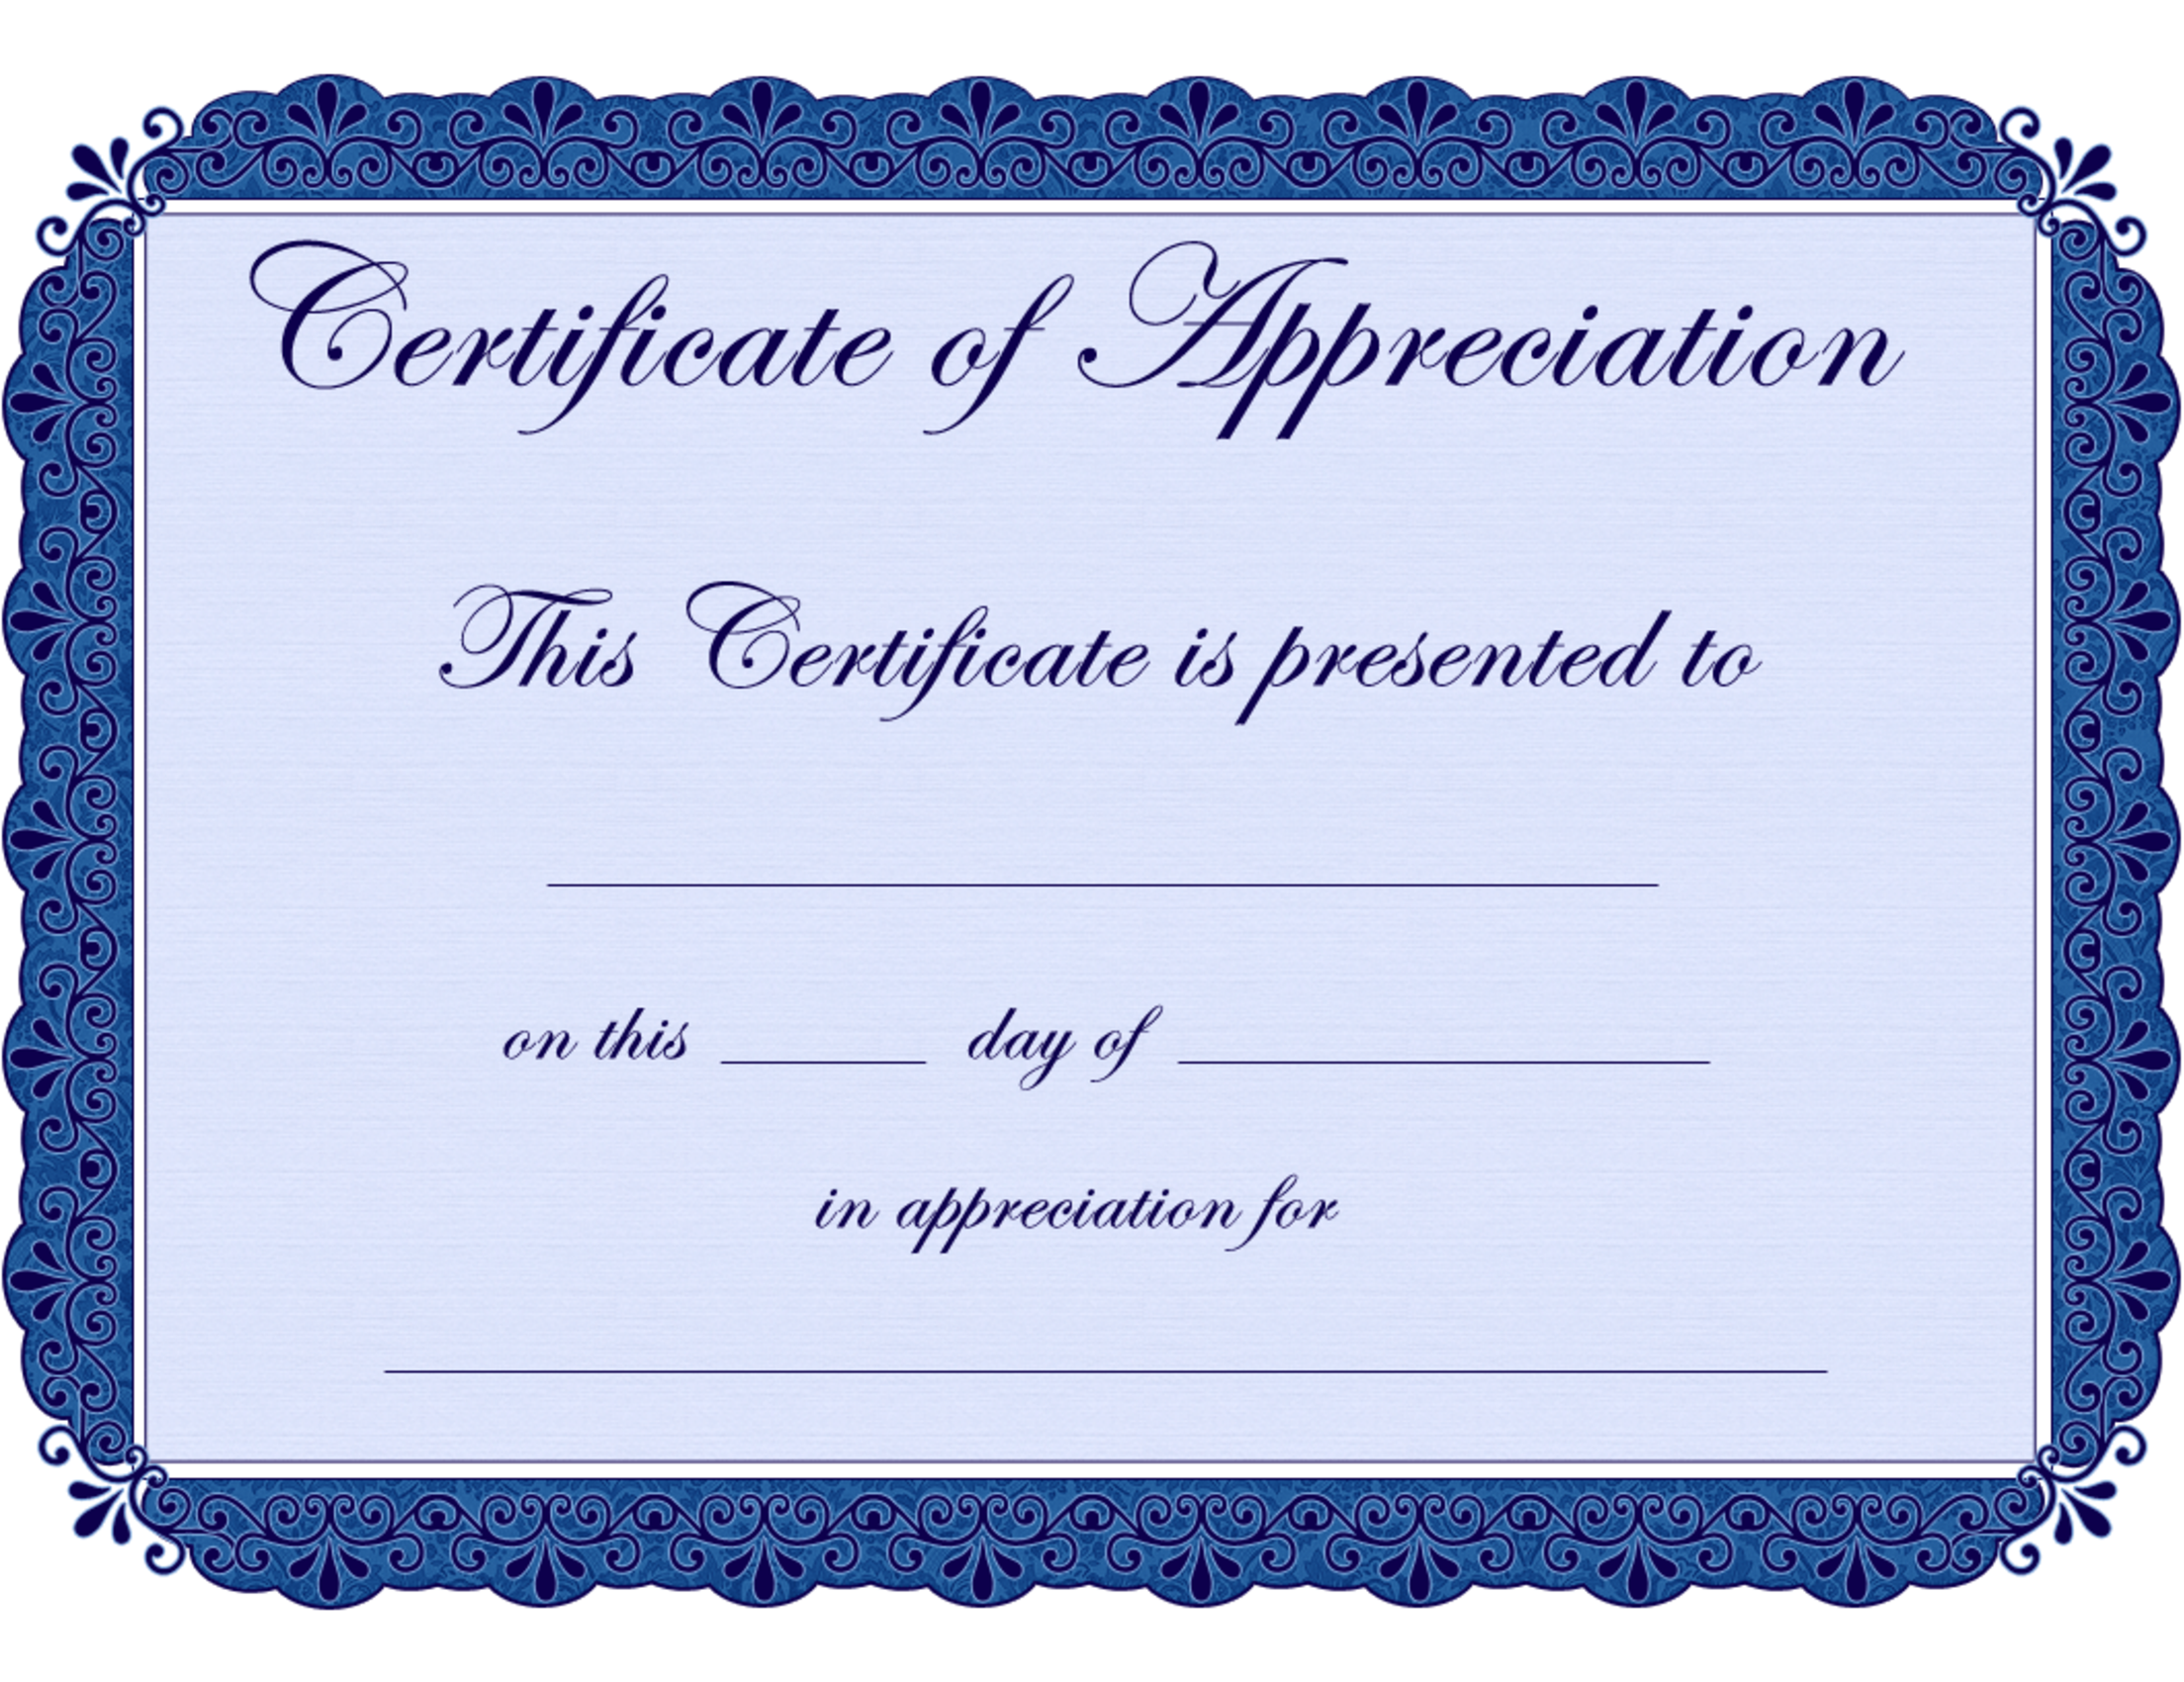 Free printable certificates certificate of appreciation certificate free printable certificates certificate of appreciation certificate yadclub Image collections